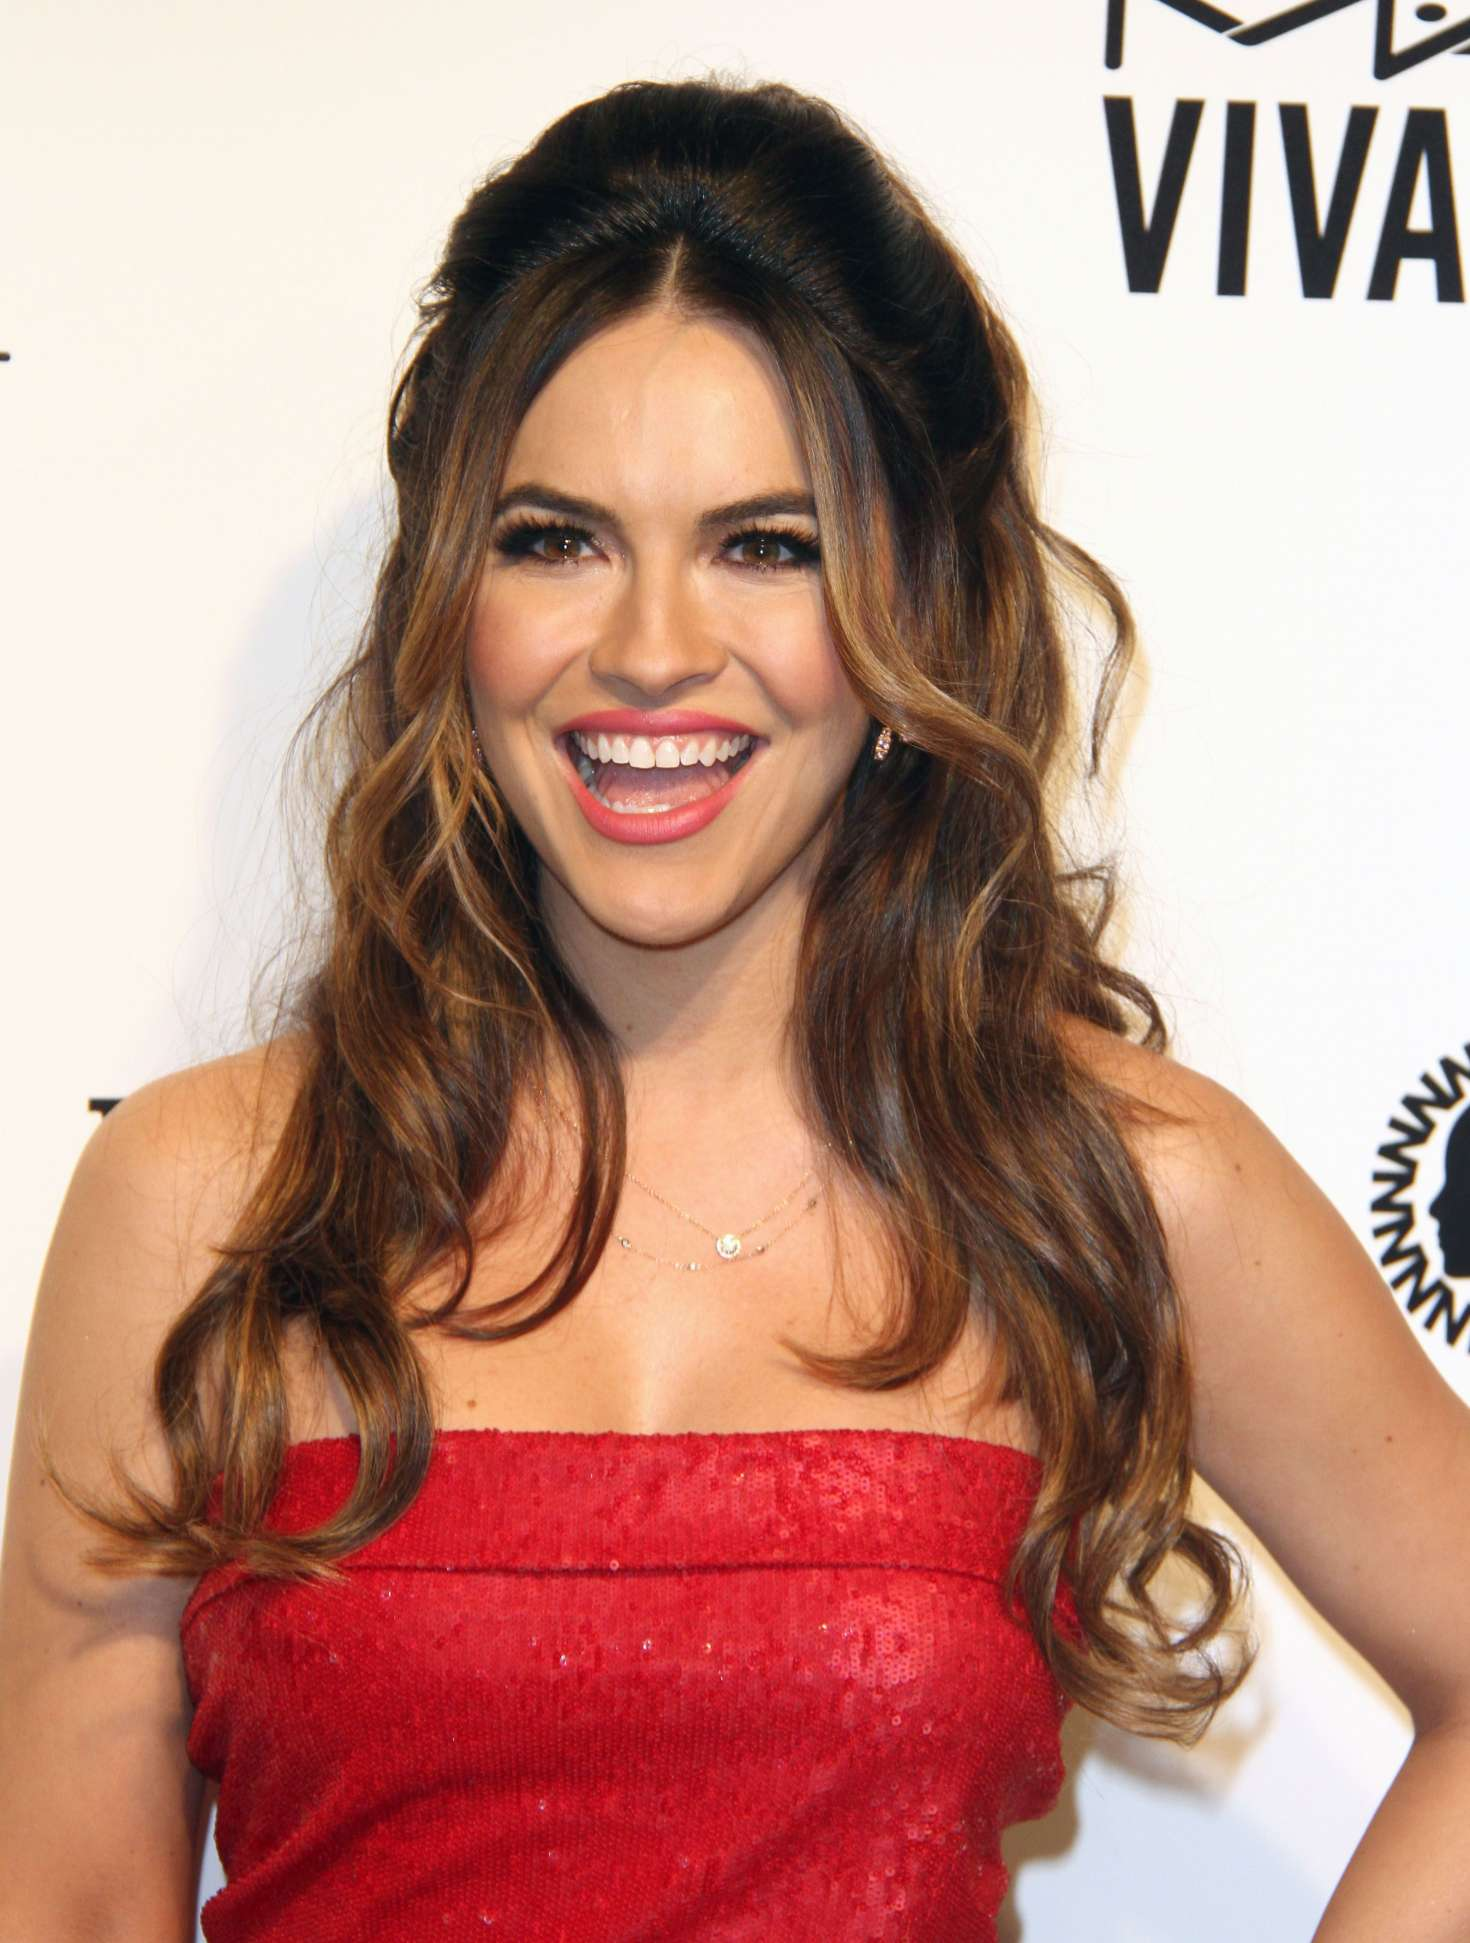 Chrishell Stause 2017 : Chrishell Stause: 2017 Elton John AIDS Foundations Oscar Viewing Party -11